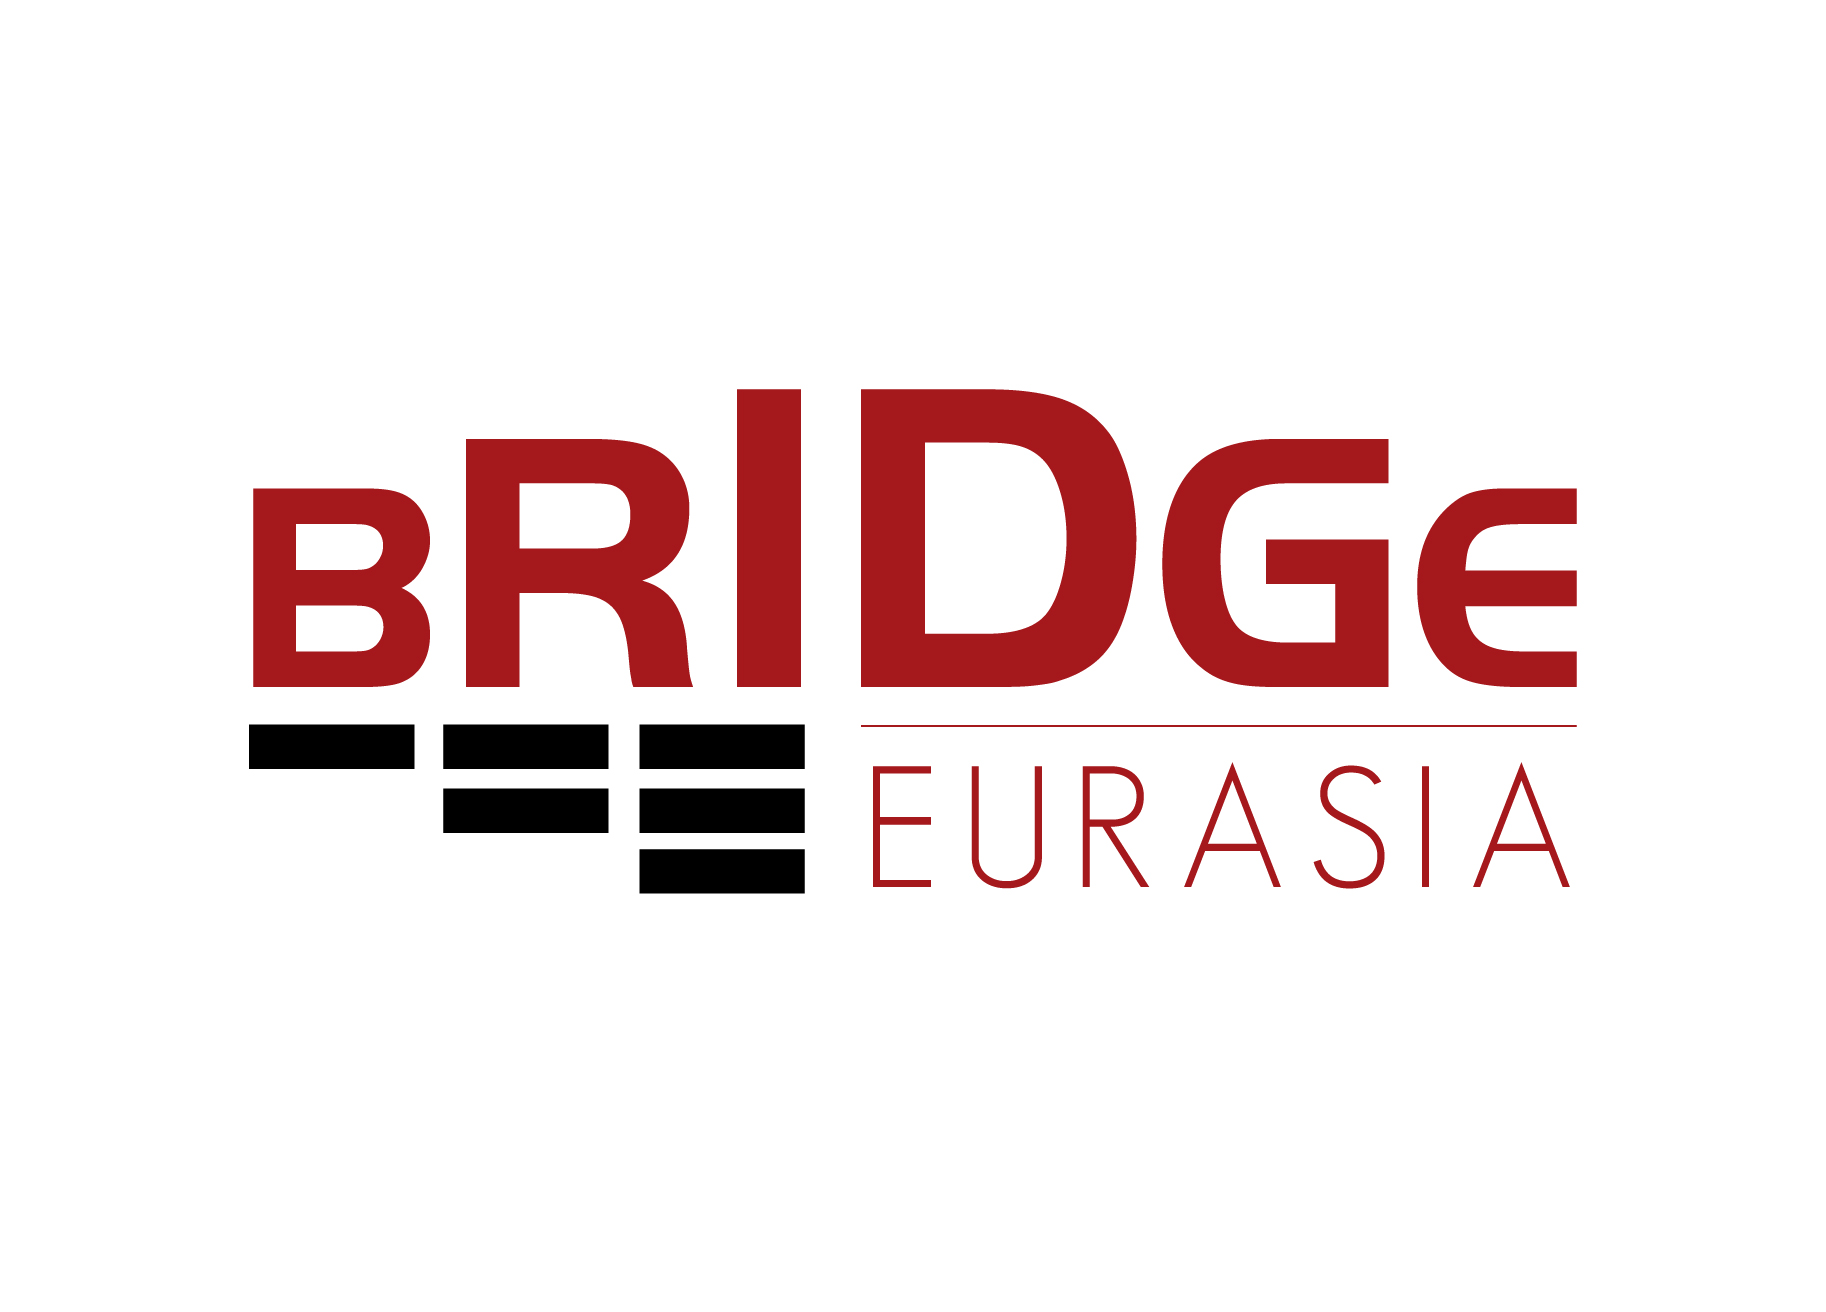 Bridge Eurasia